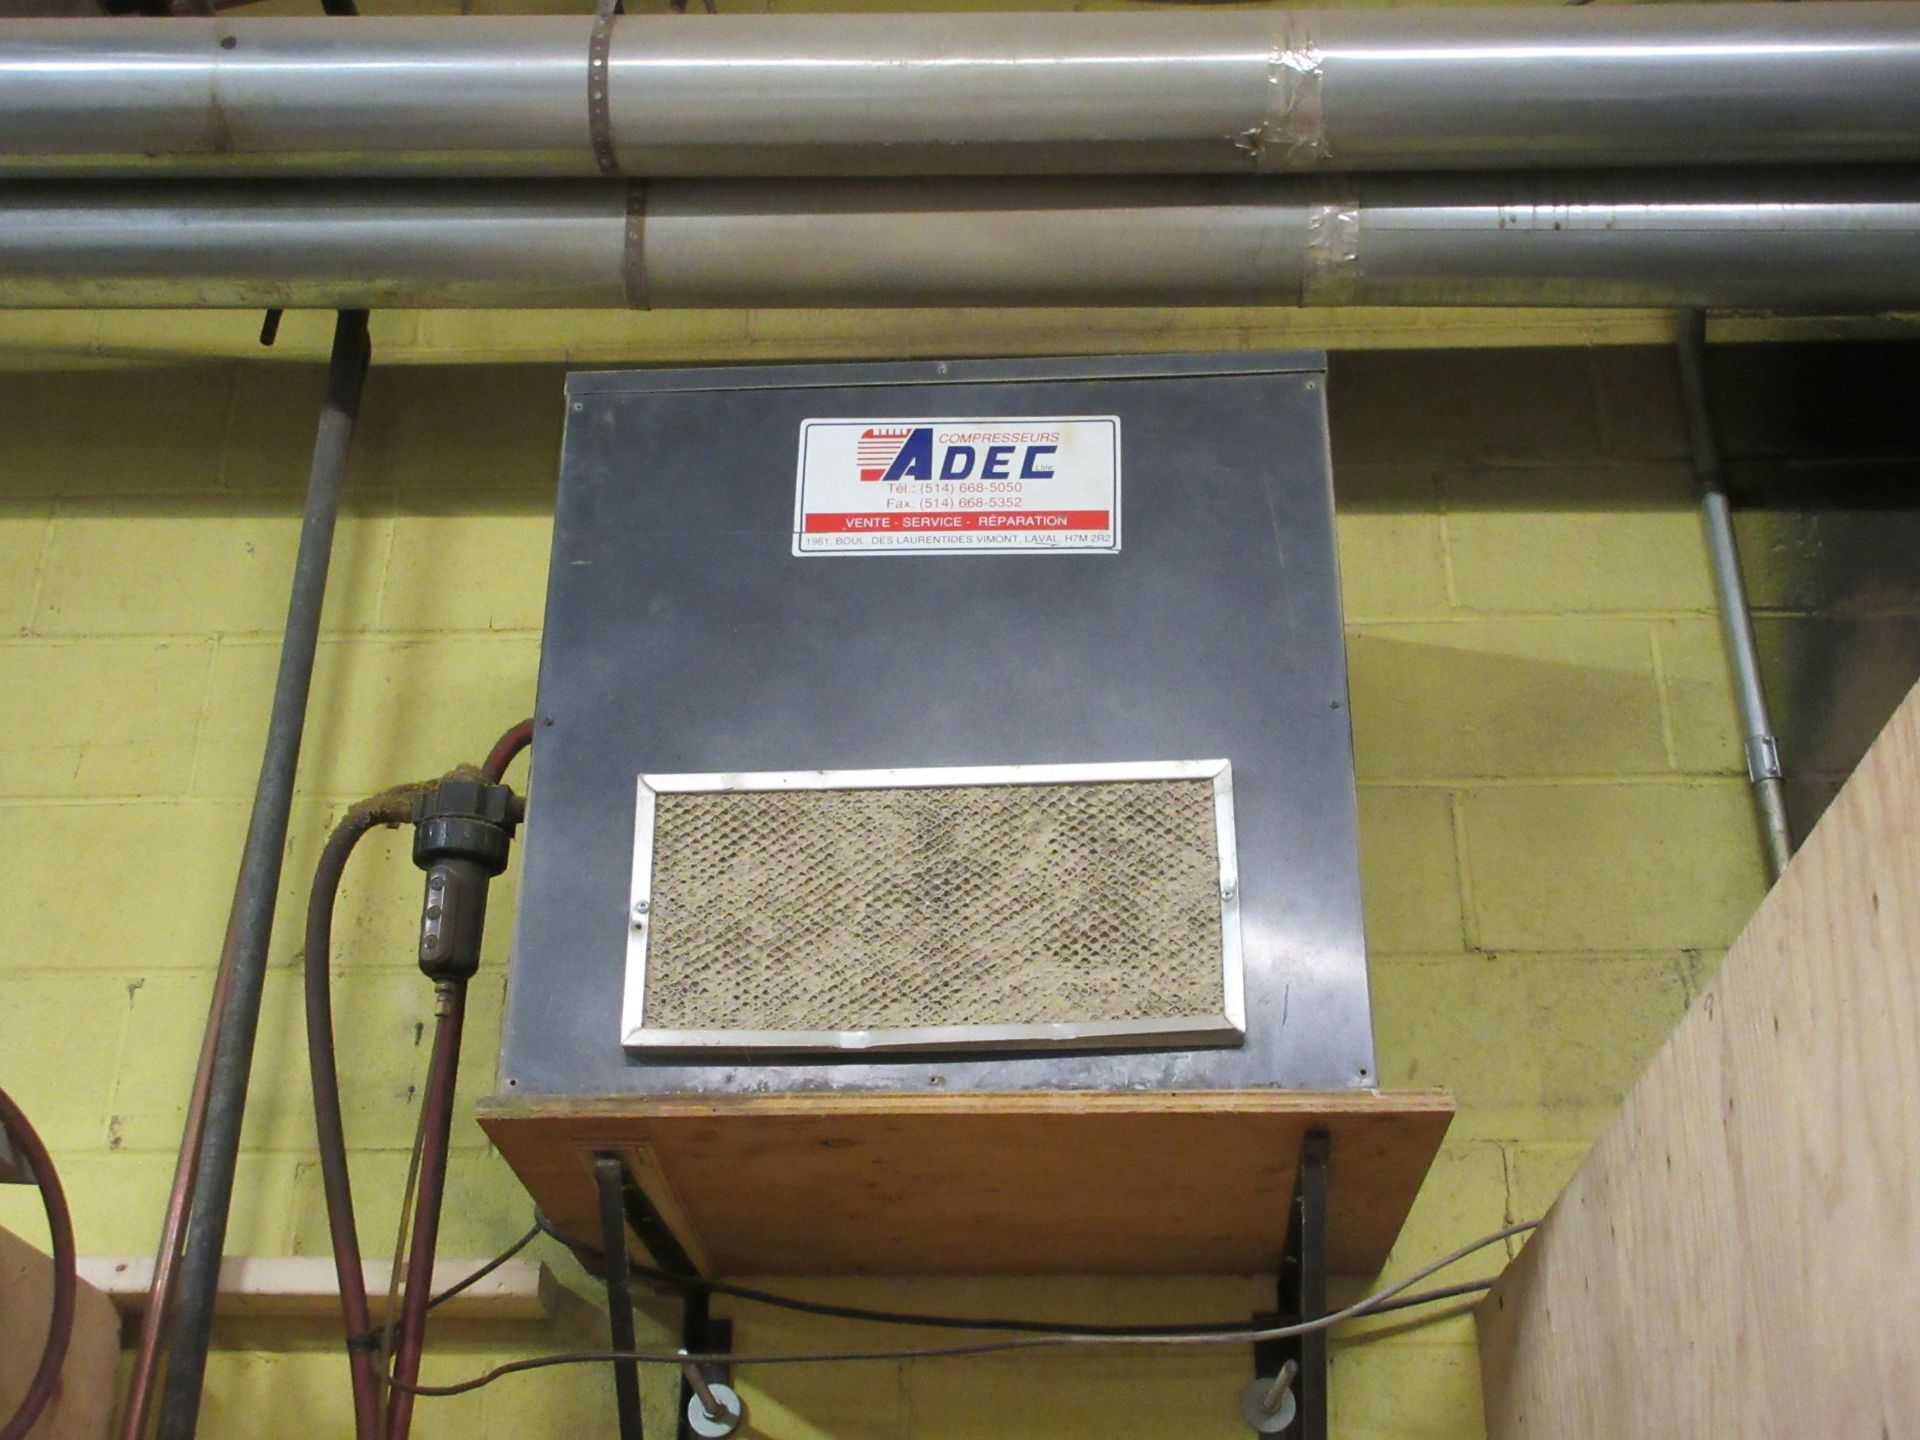 Lot 47 - ADEC air dryer (SUBJECT TO BANK APPROVAL)